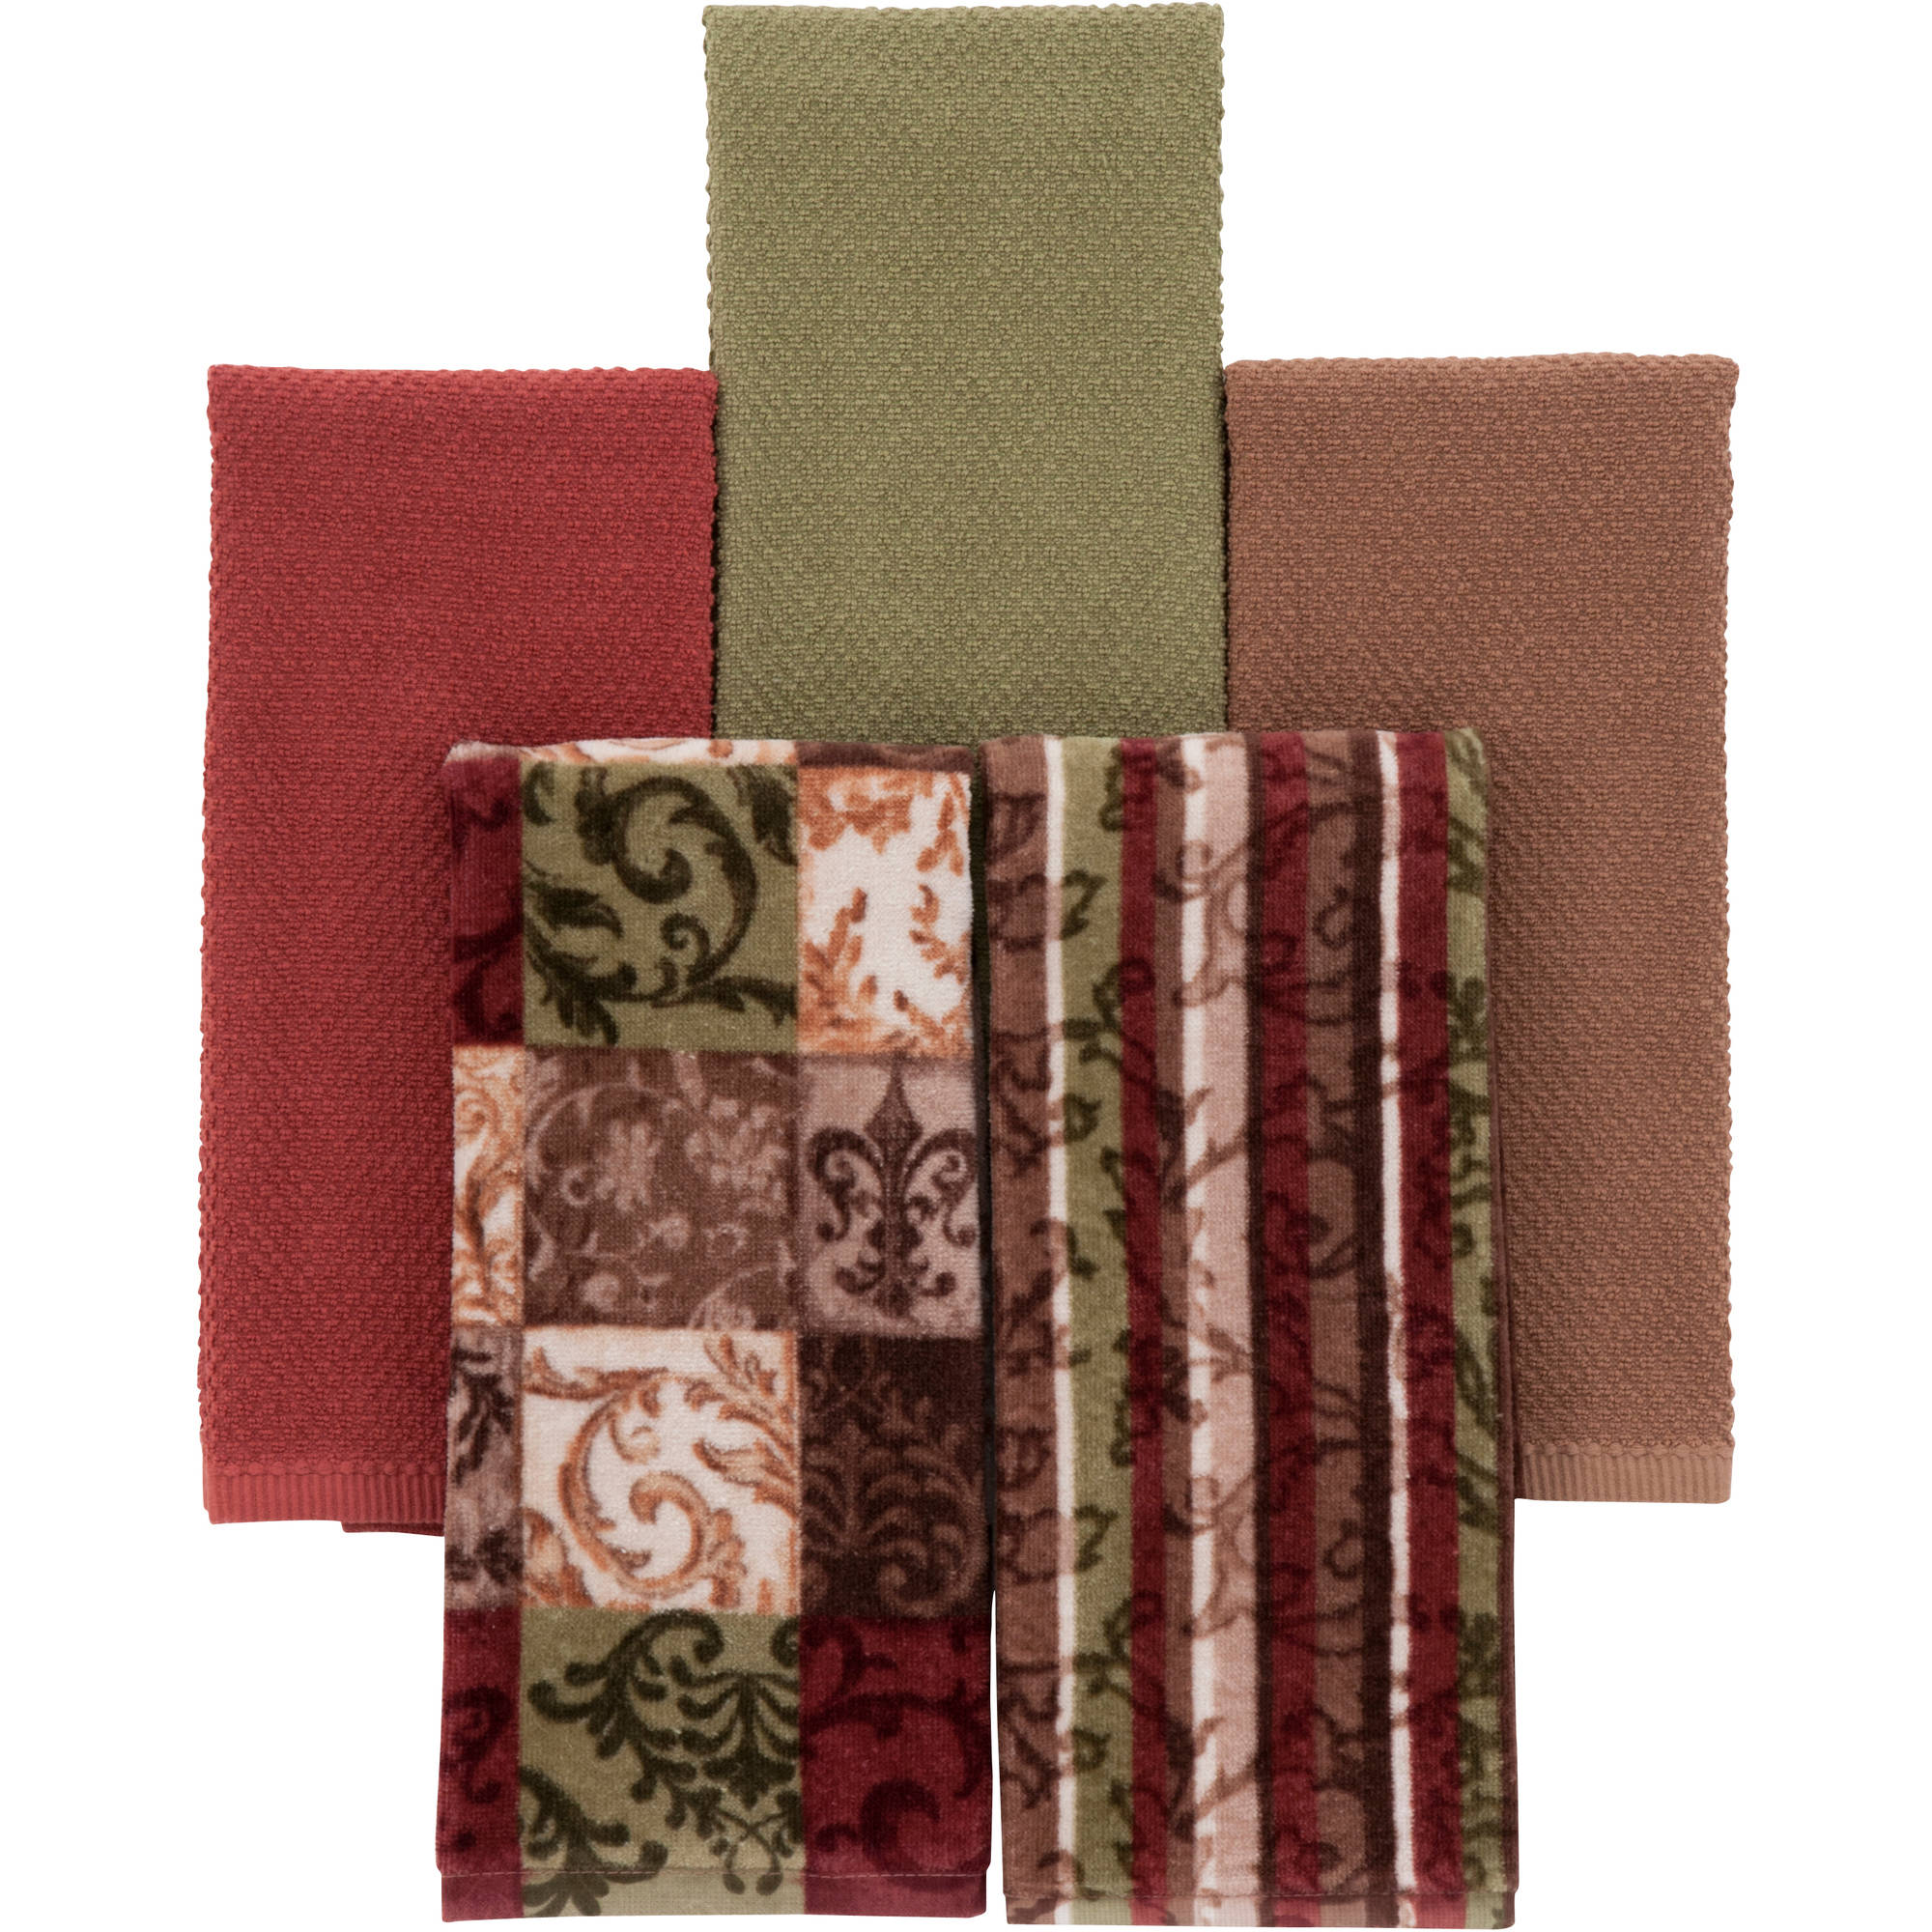 Mainstays Tuscany 5-Pack Kitchen Towels